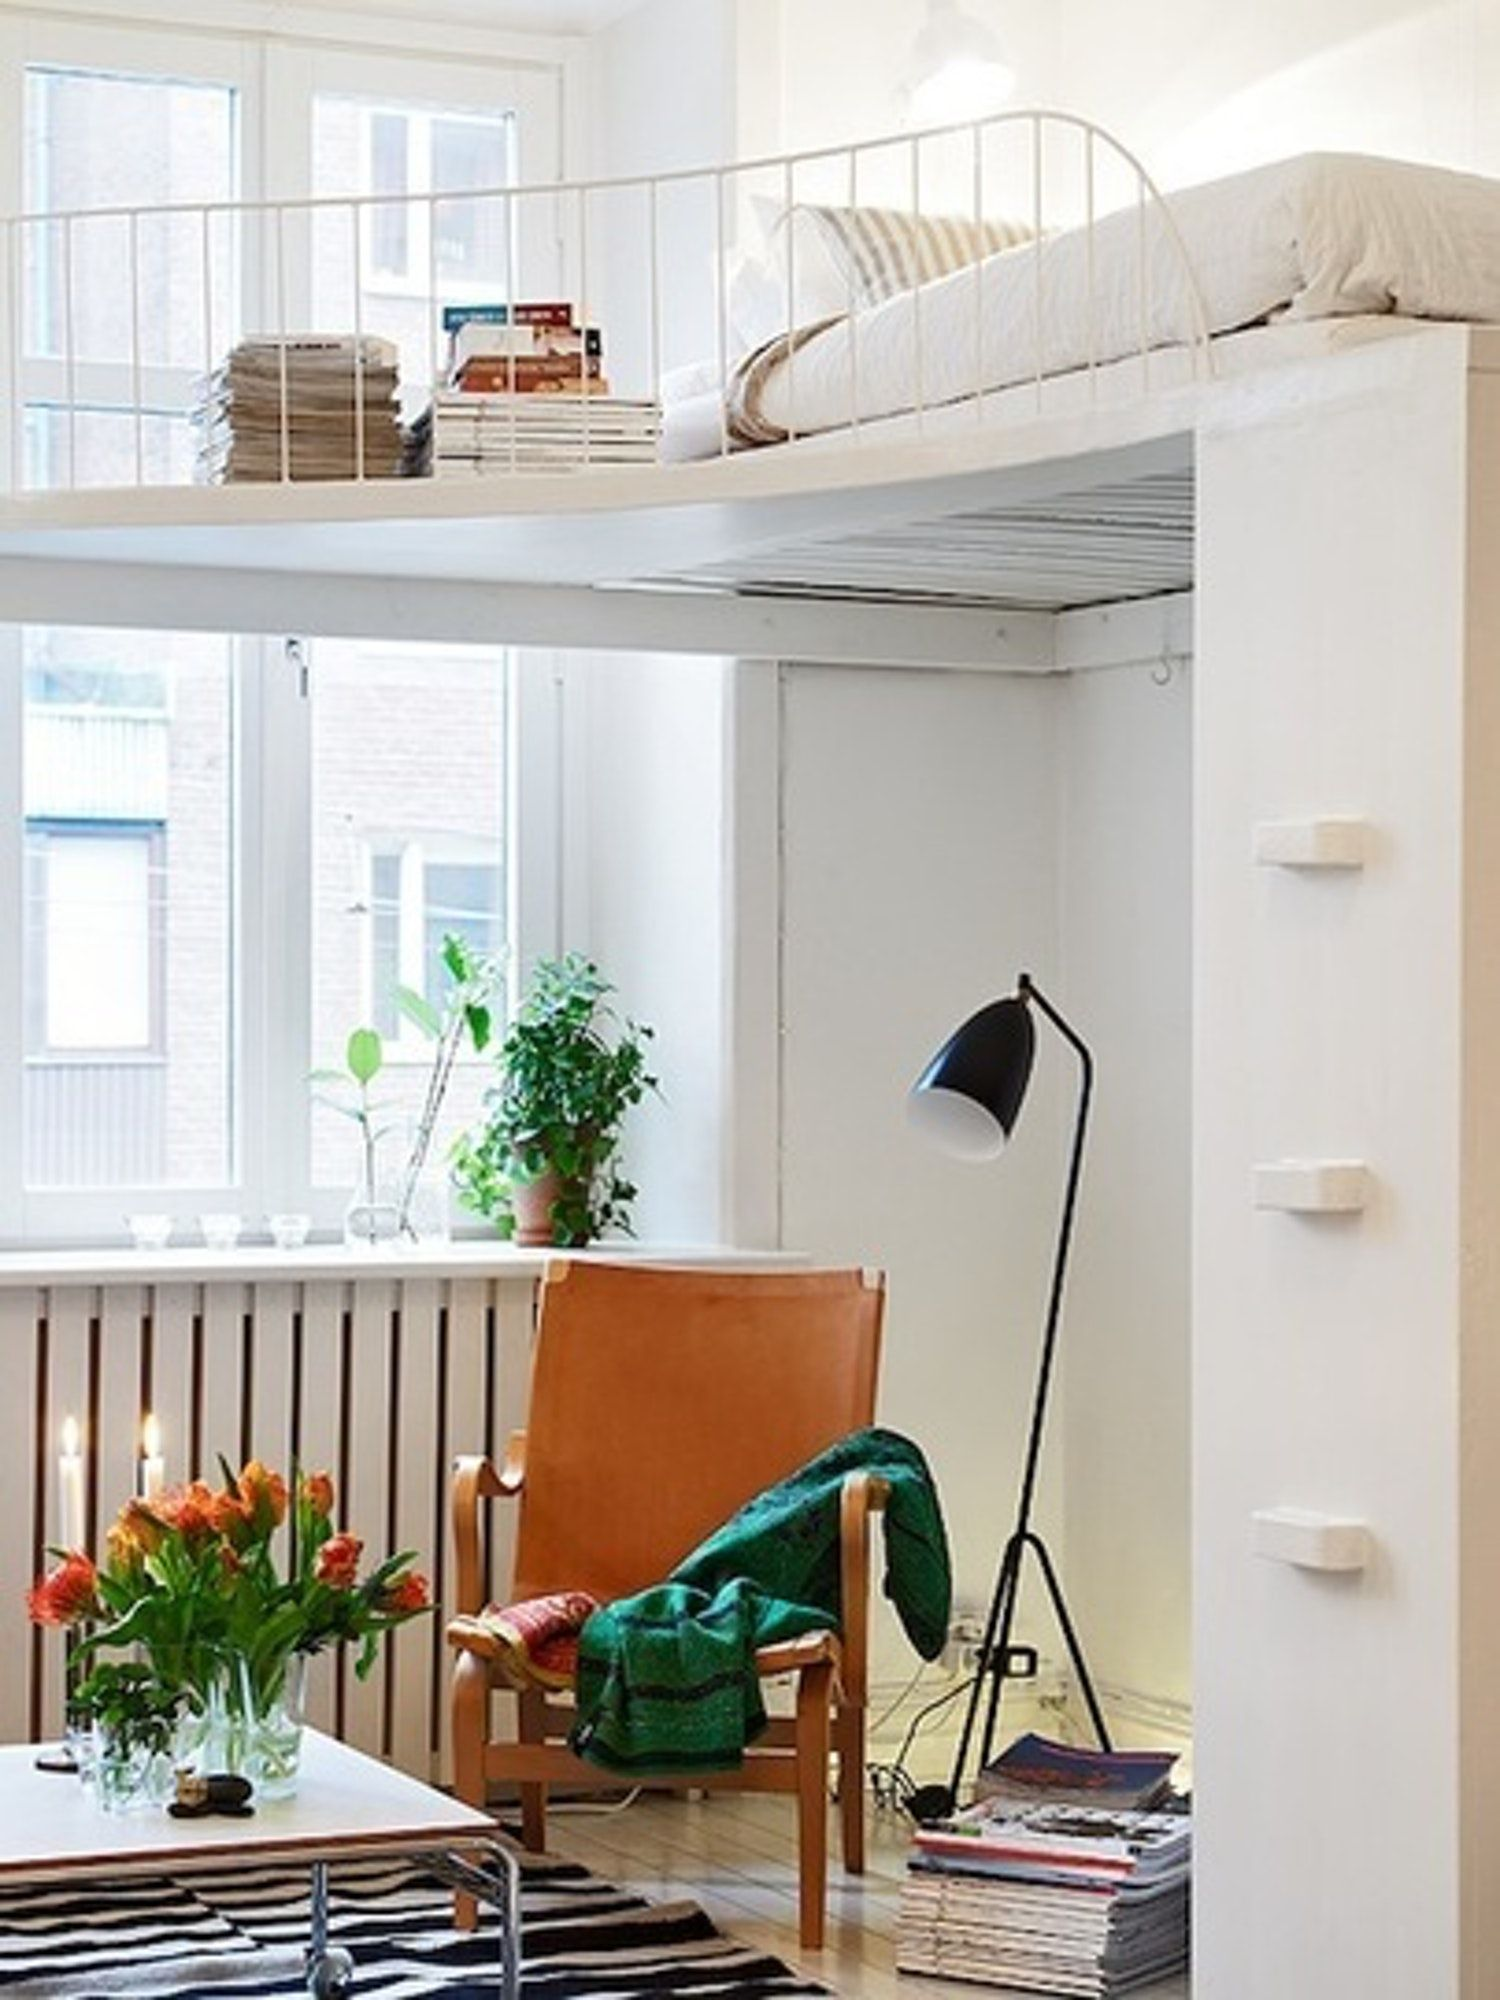 Loft bed ideas for small rooms  Lofty Aspirations Fifteen Lovely Loft Beds  Lofts Small spaces